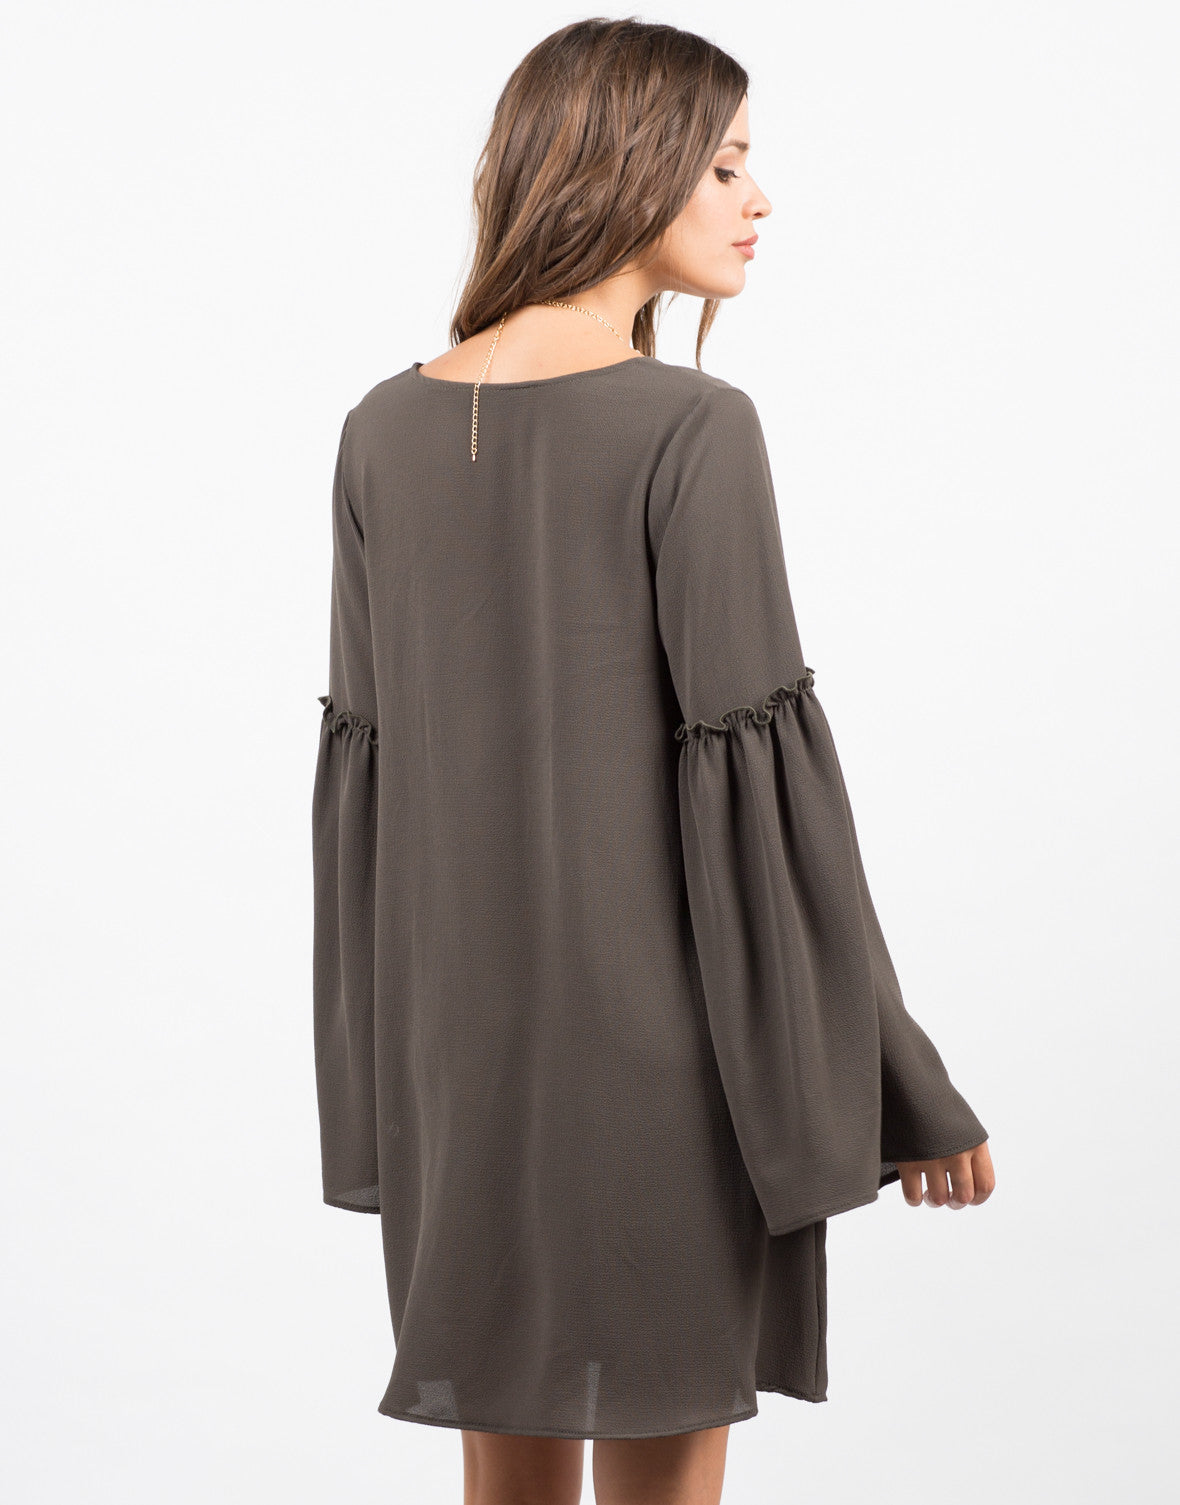 Back View of Ruffle Flare Sleeve Dress